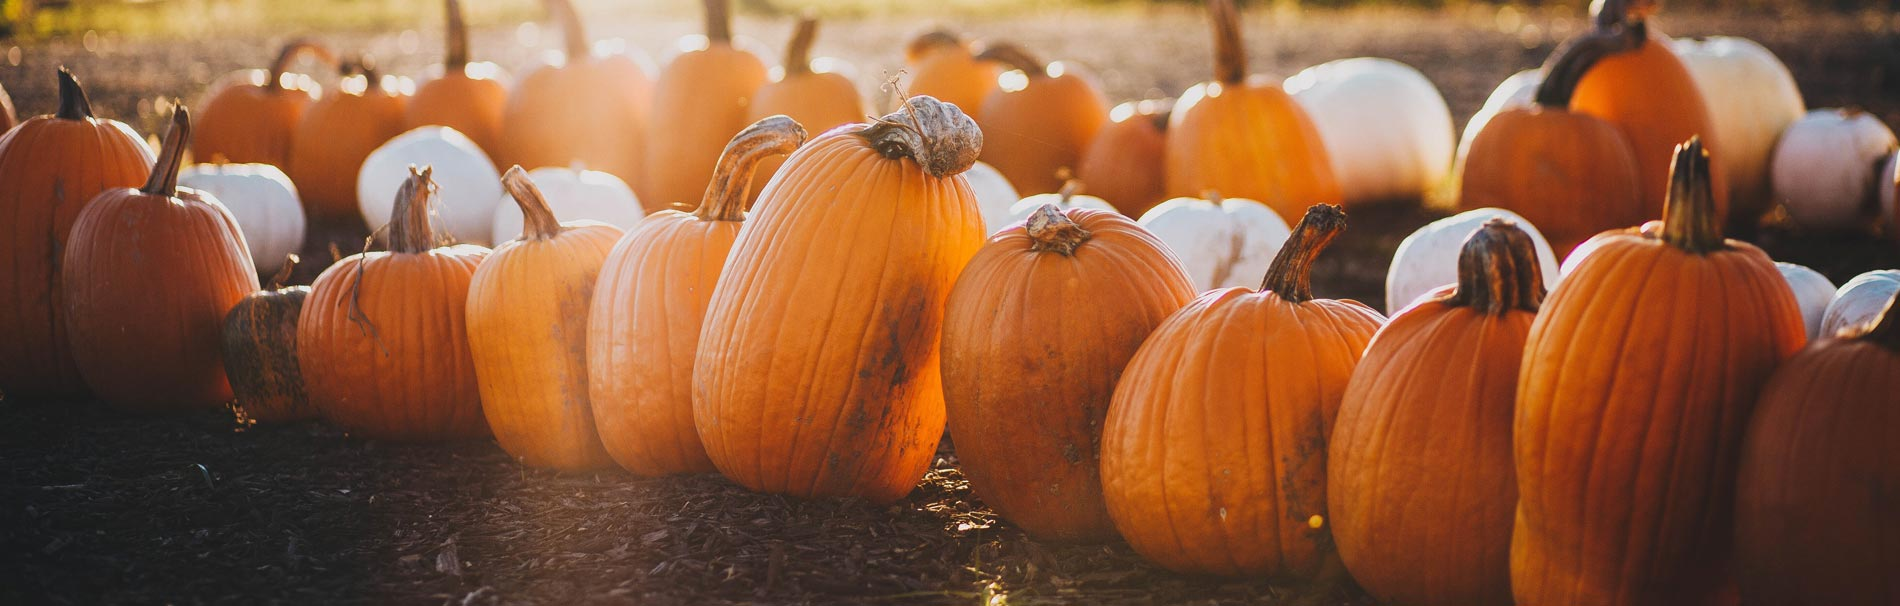 11 Things We Love About Fall - Winston-Salem Retirement